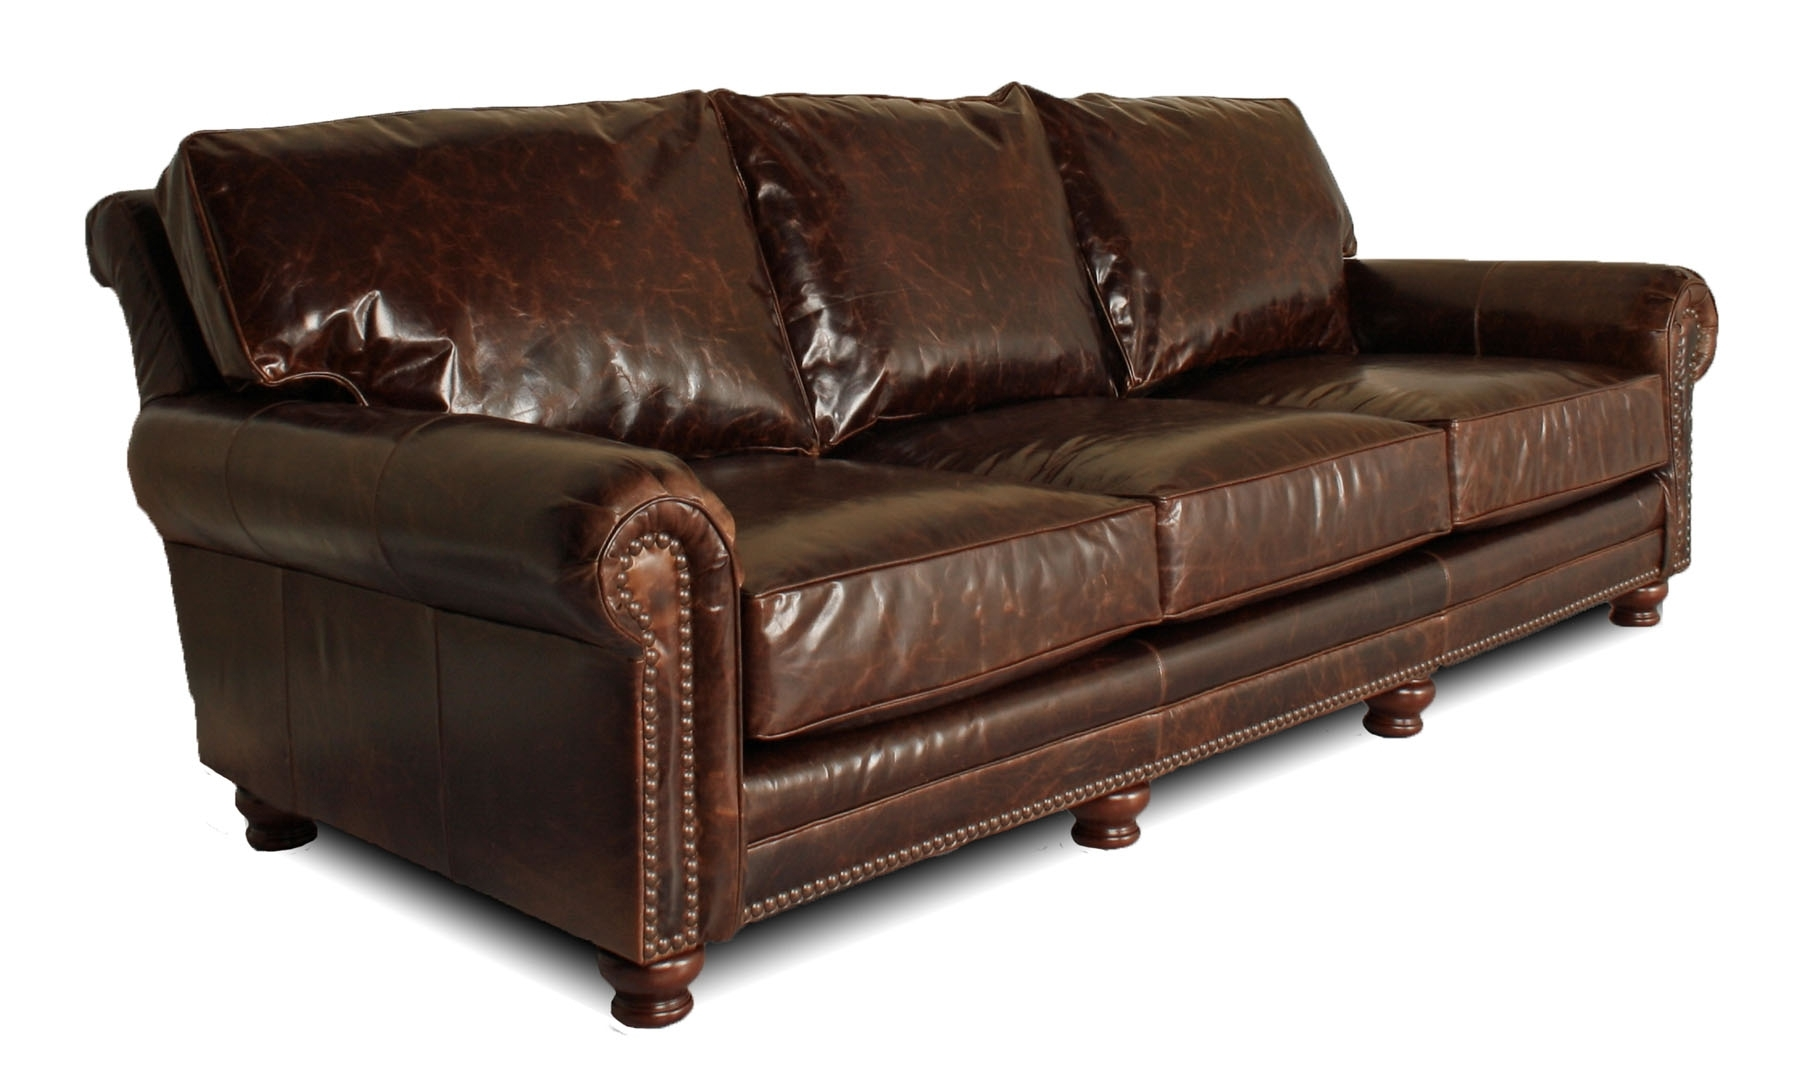 Deep Leather Furniture For The Big & Tall, Atlanta, Austin,chicago With Regard To Most Popular Kingston Sectional Sofas (View 10 of 15)